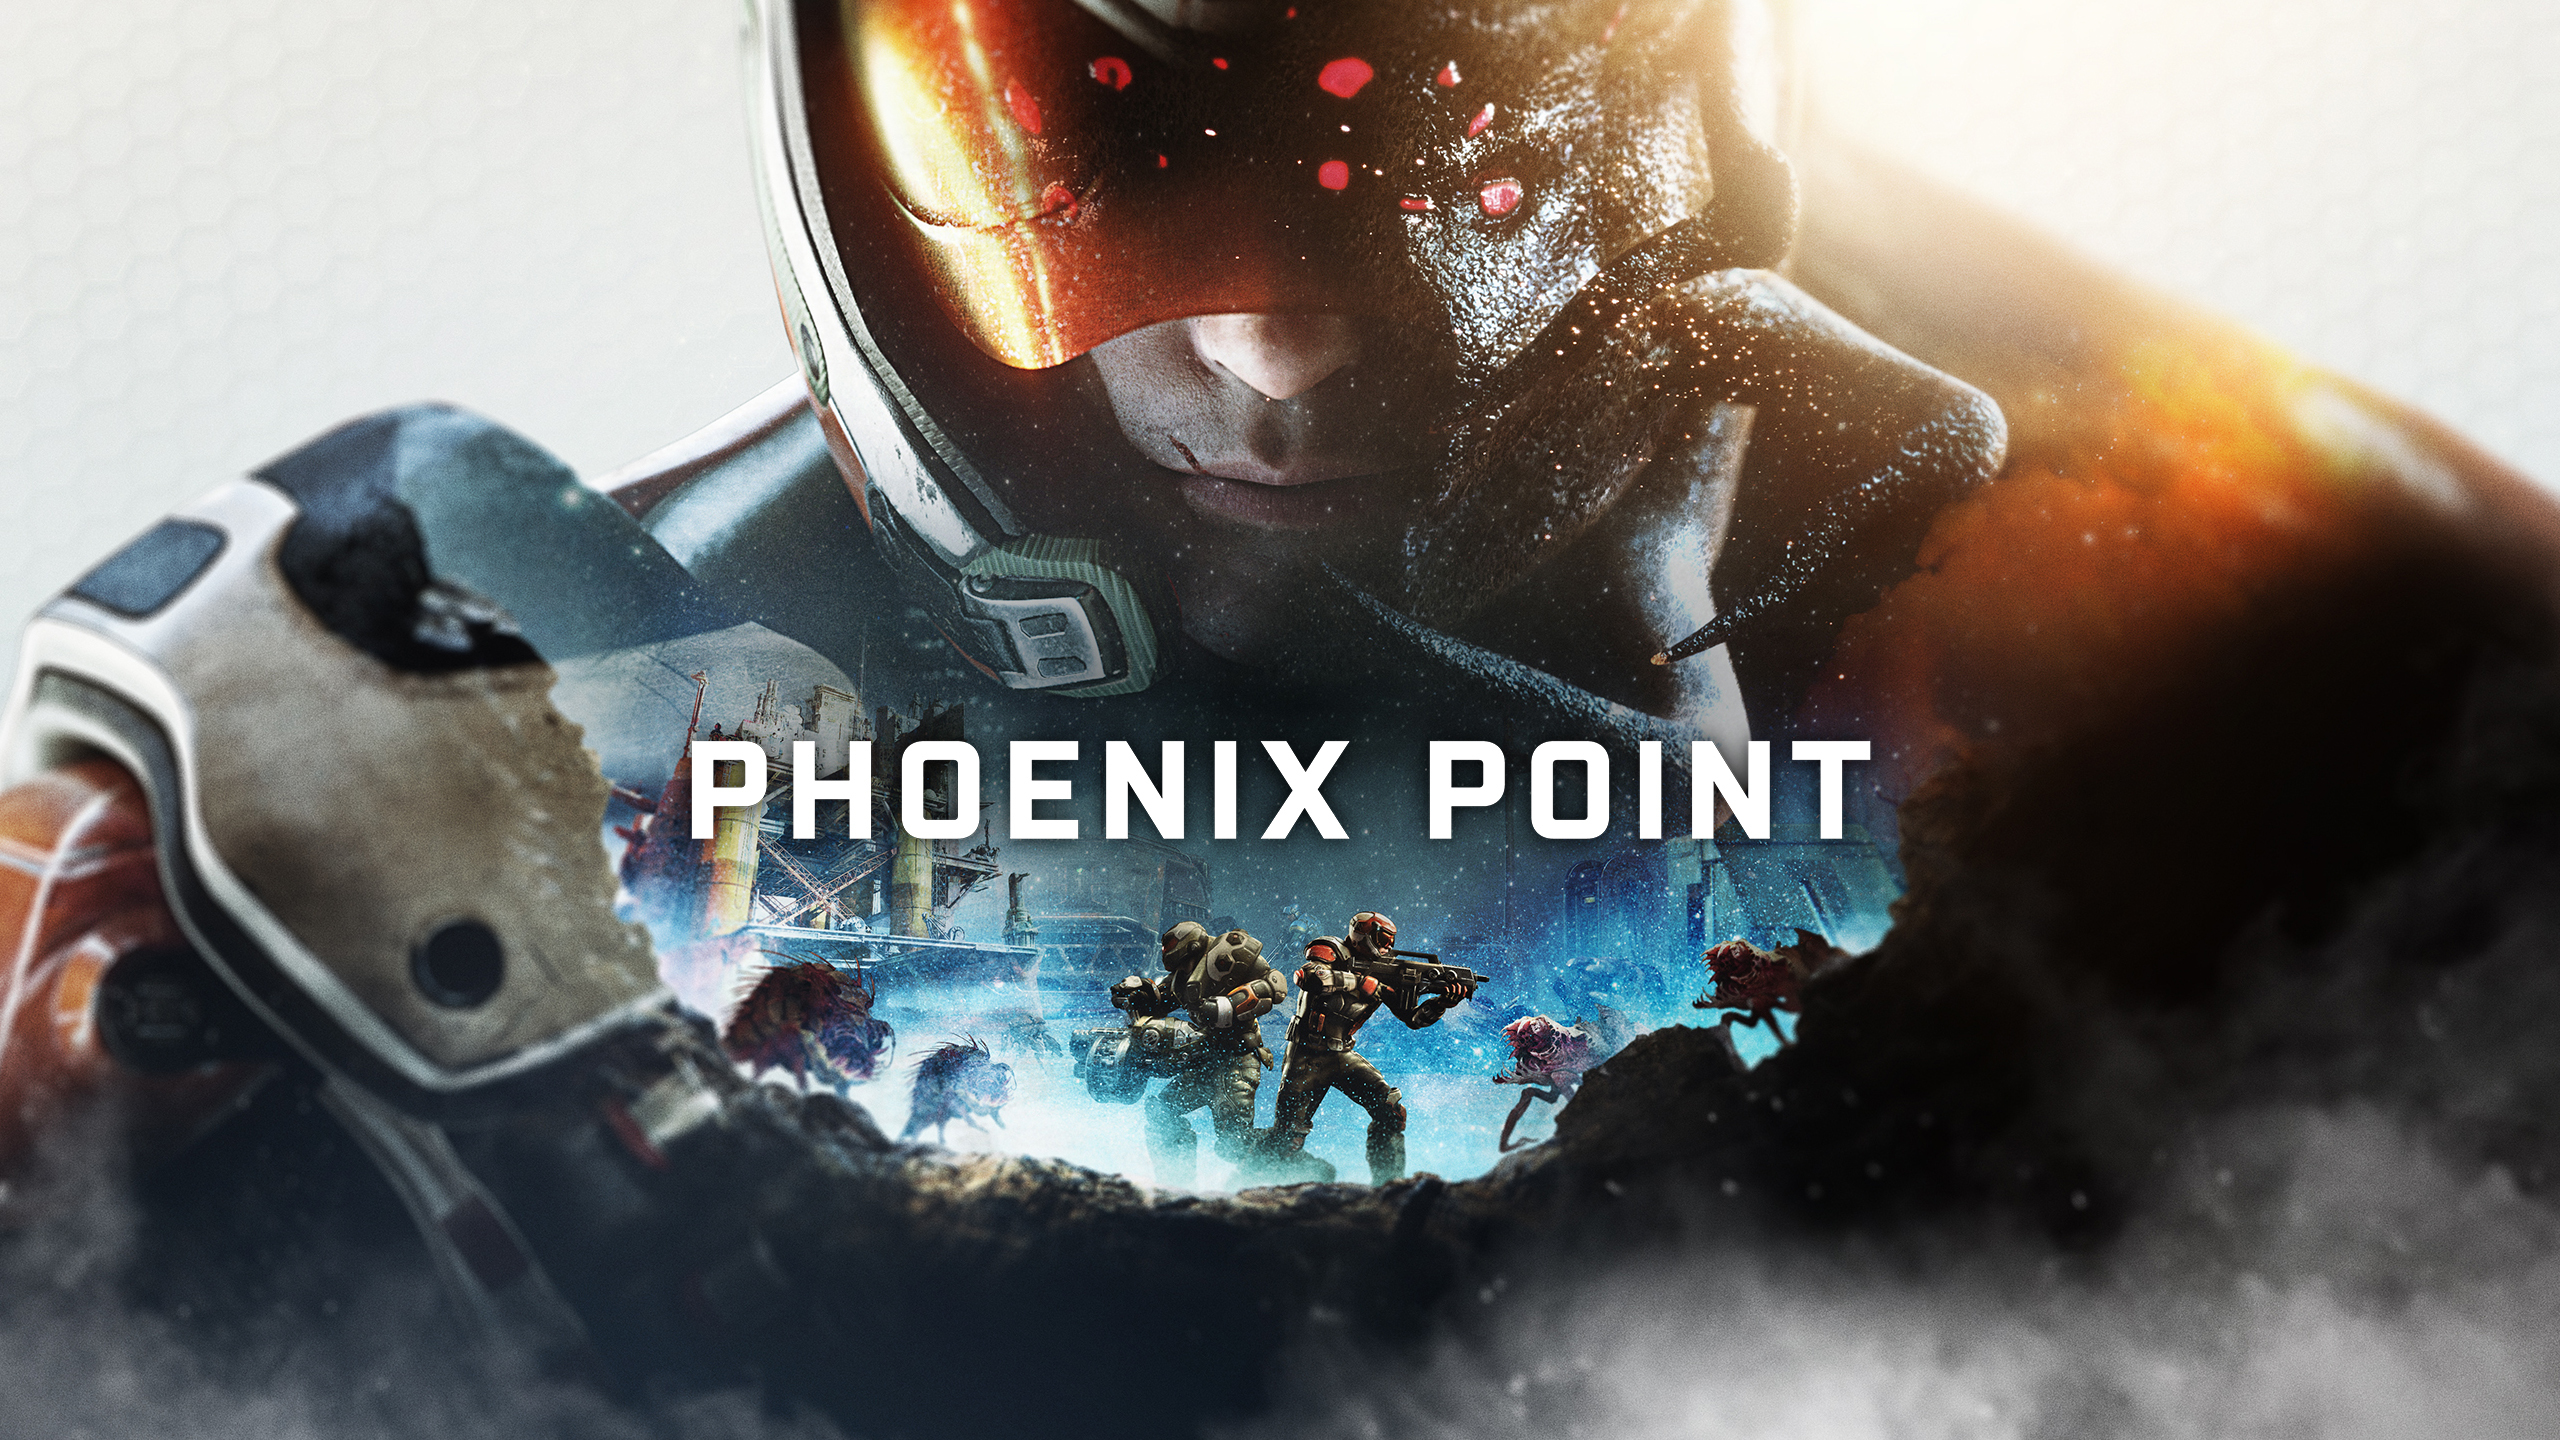 From the maker of X-COM, comes a new strategy game. Fight off the alien invasion in 'Phoenix Point'. Available For Pre-Purchase Now!